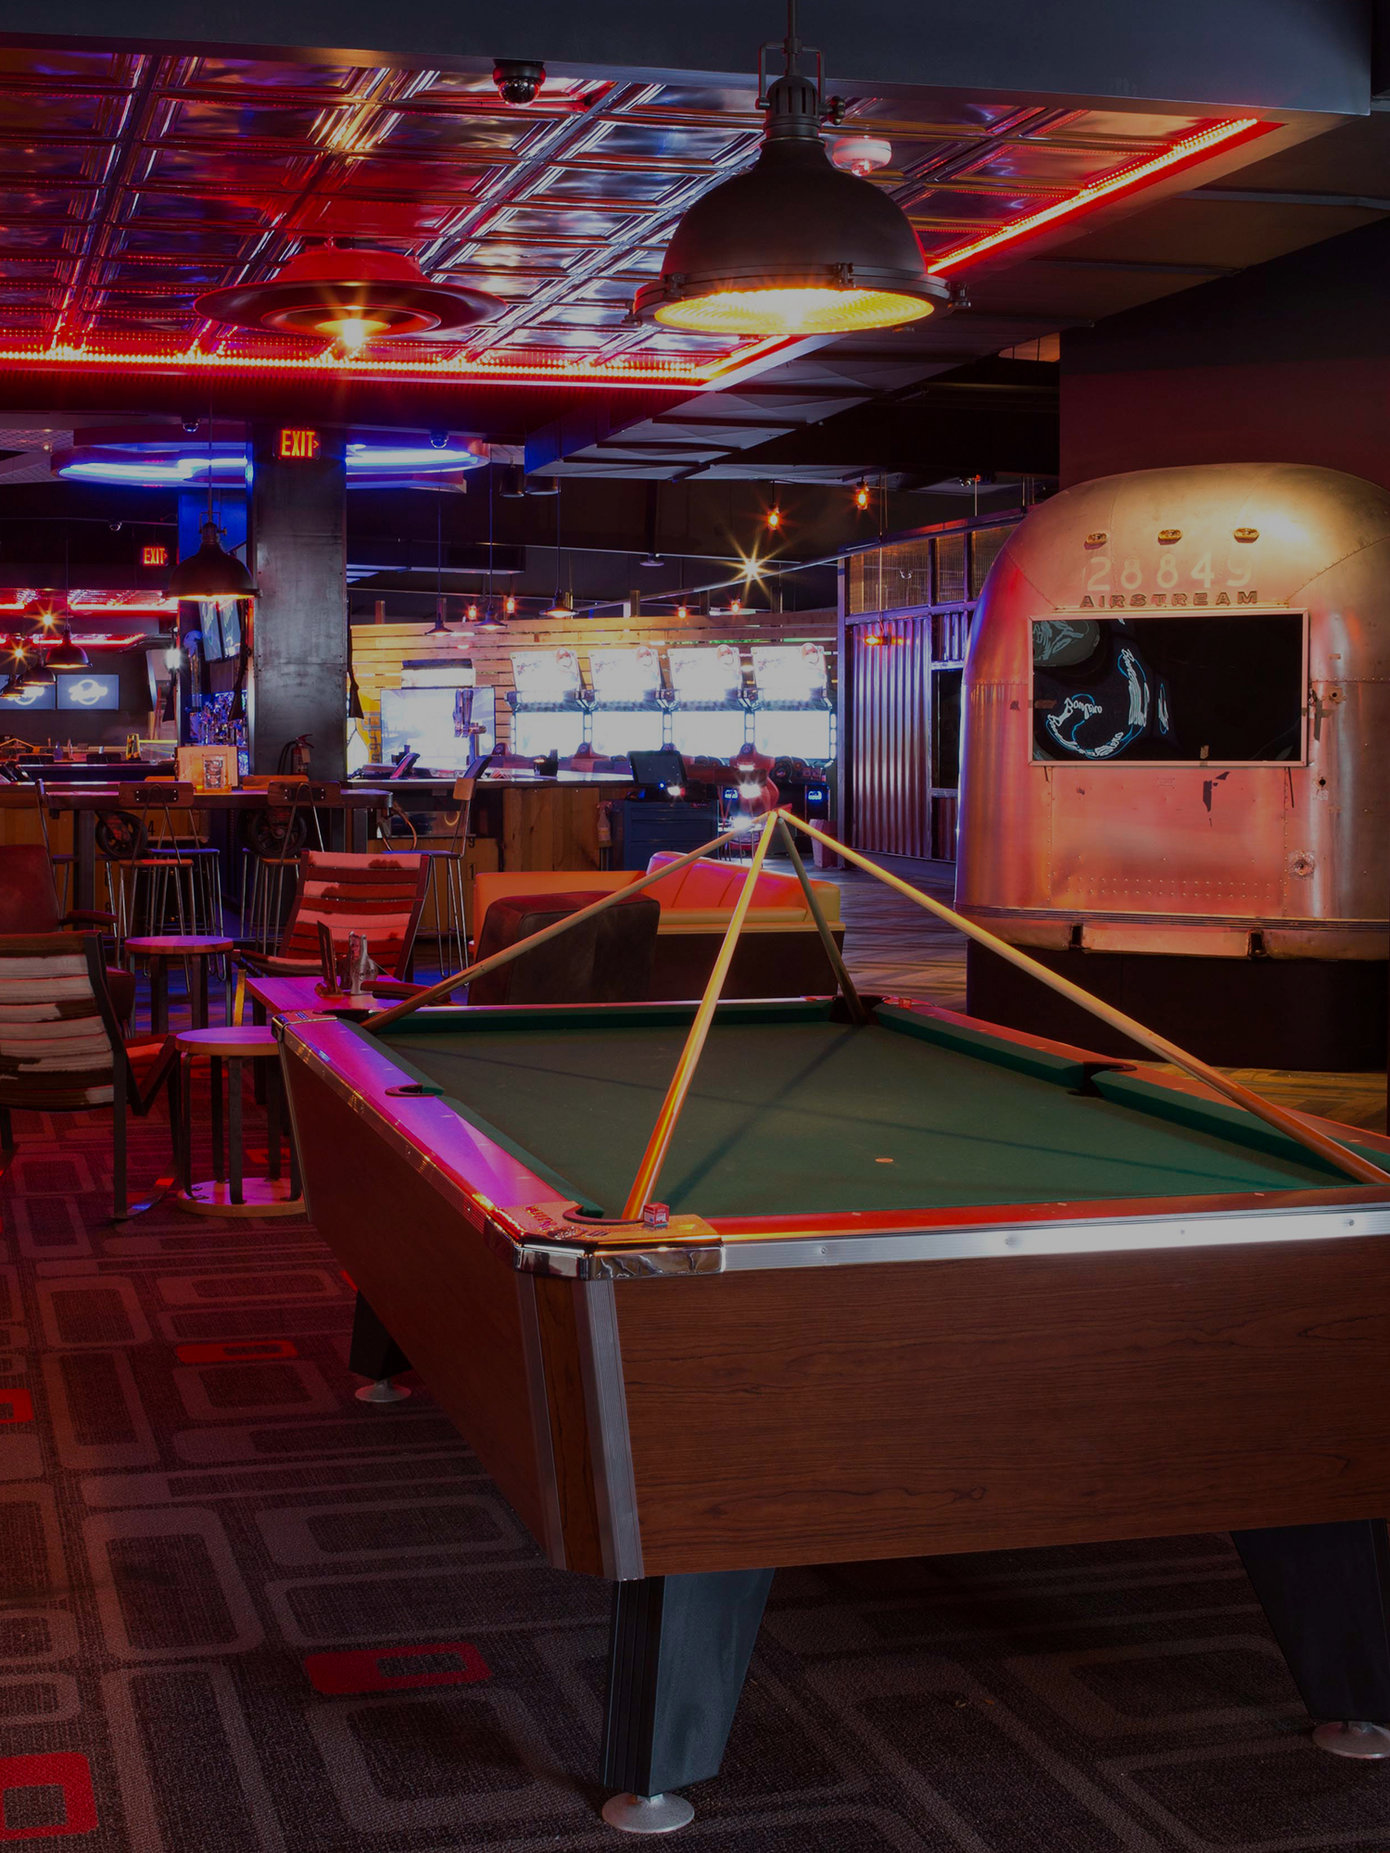 billiards and bar area